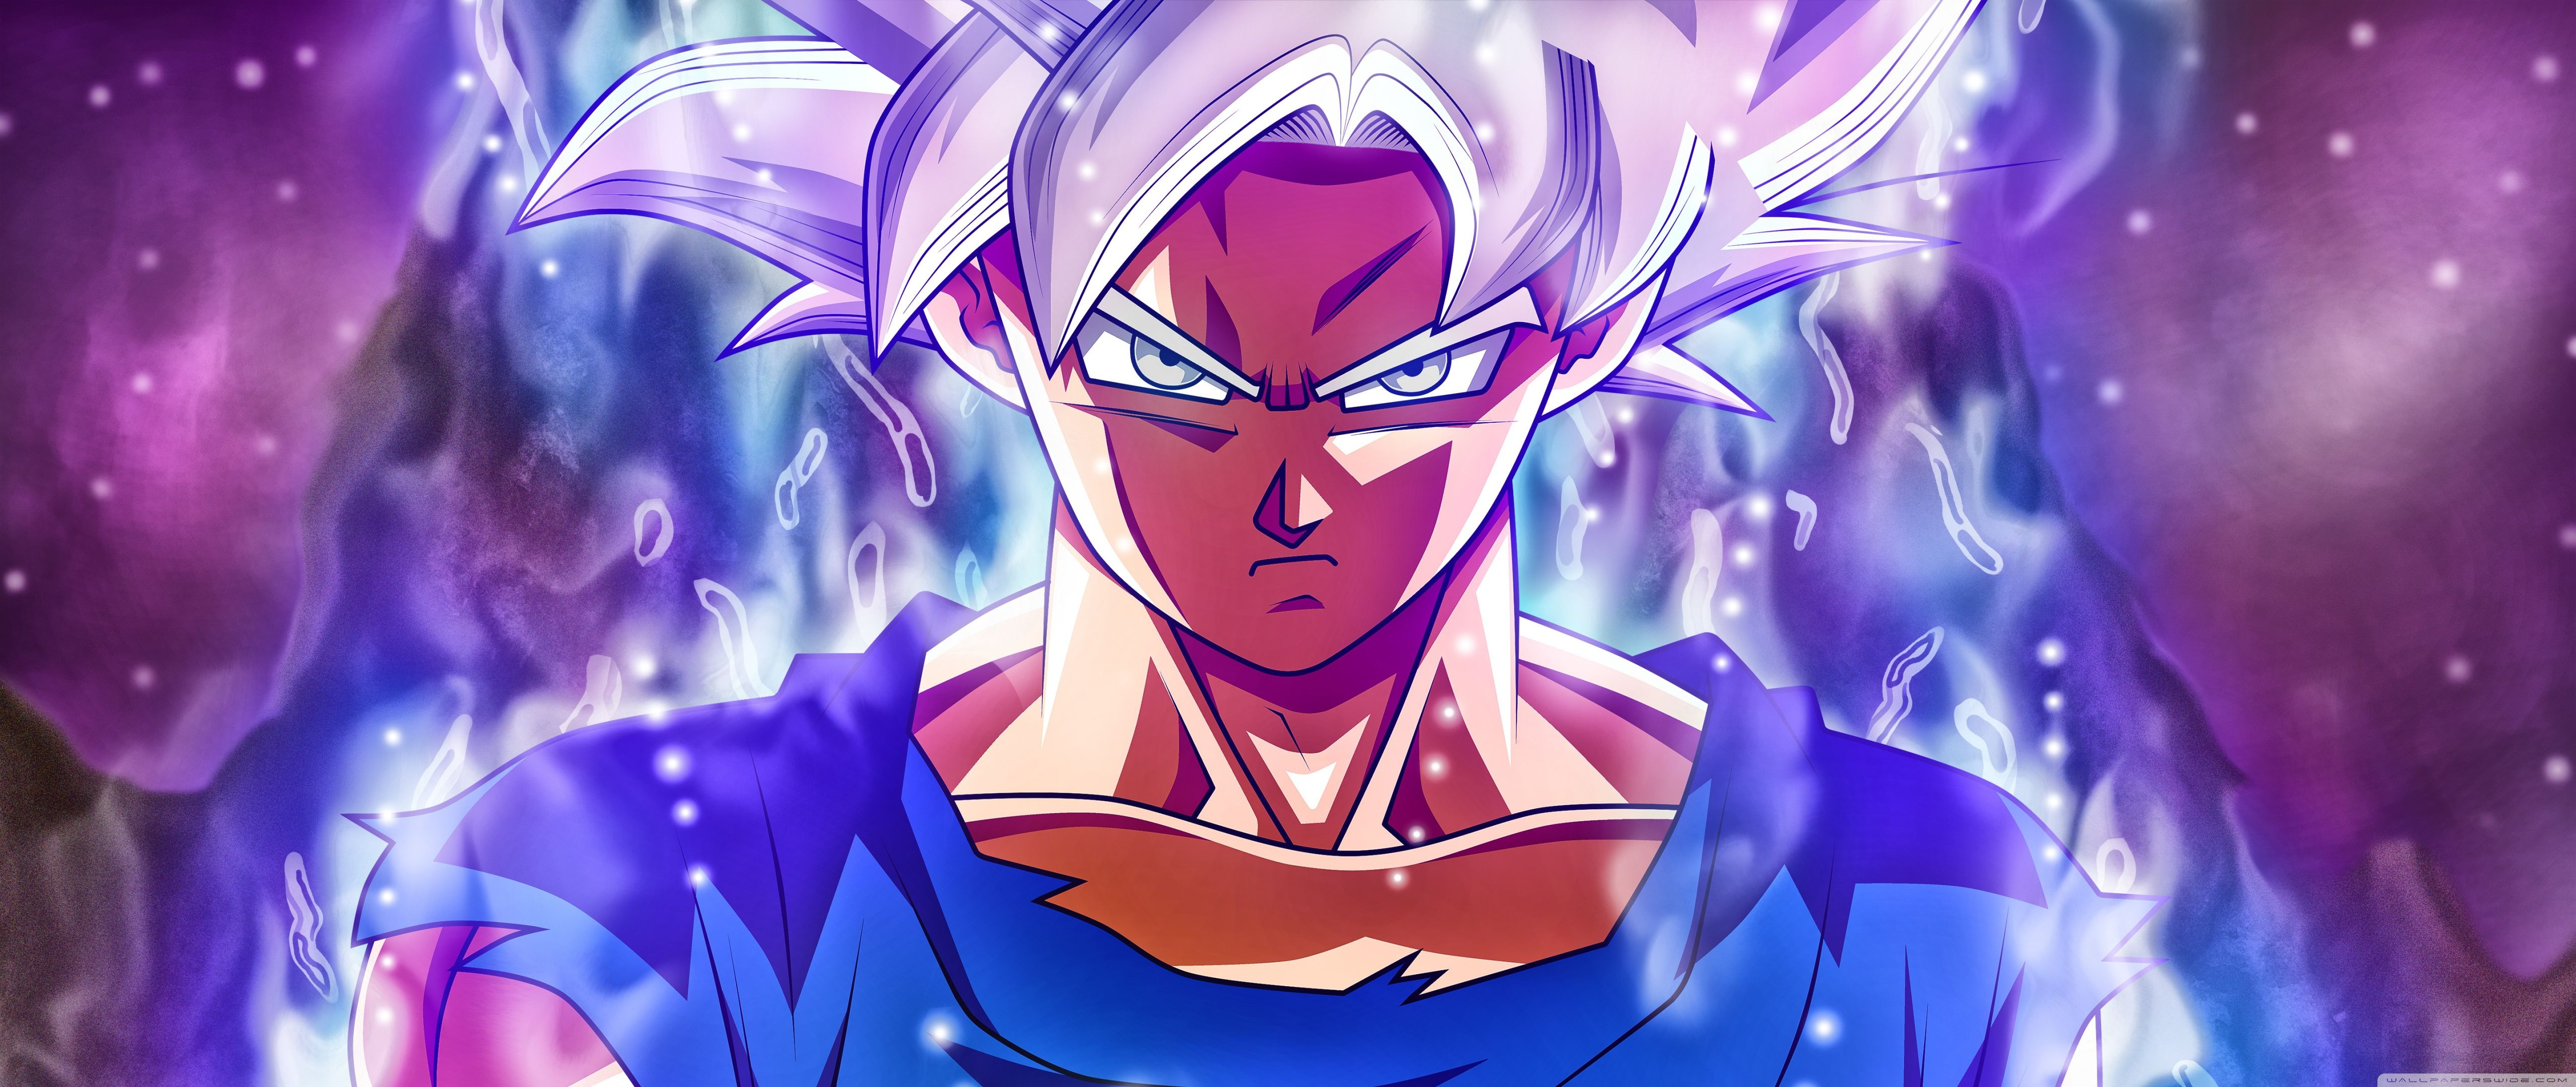 Dragon Ball Ultra Wide Wallpaper Ultrawide Goku Ultra Instinct Wallpaper 4k Hd Wallpapers In 2020 Dragon Ball Super Wallpapers Goku Wallpaper Dragon Ball Super Goku